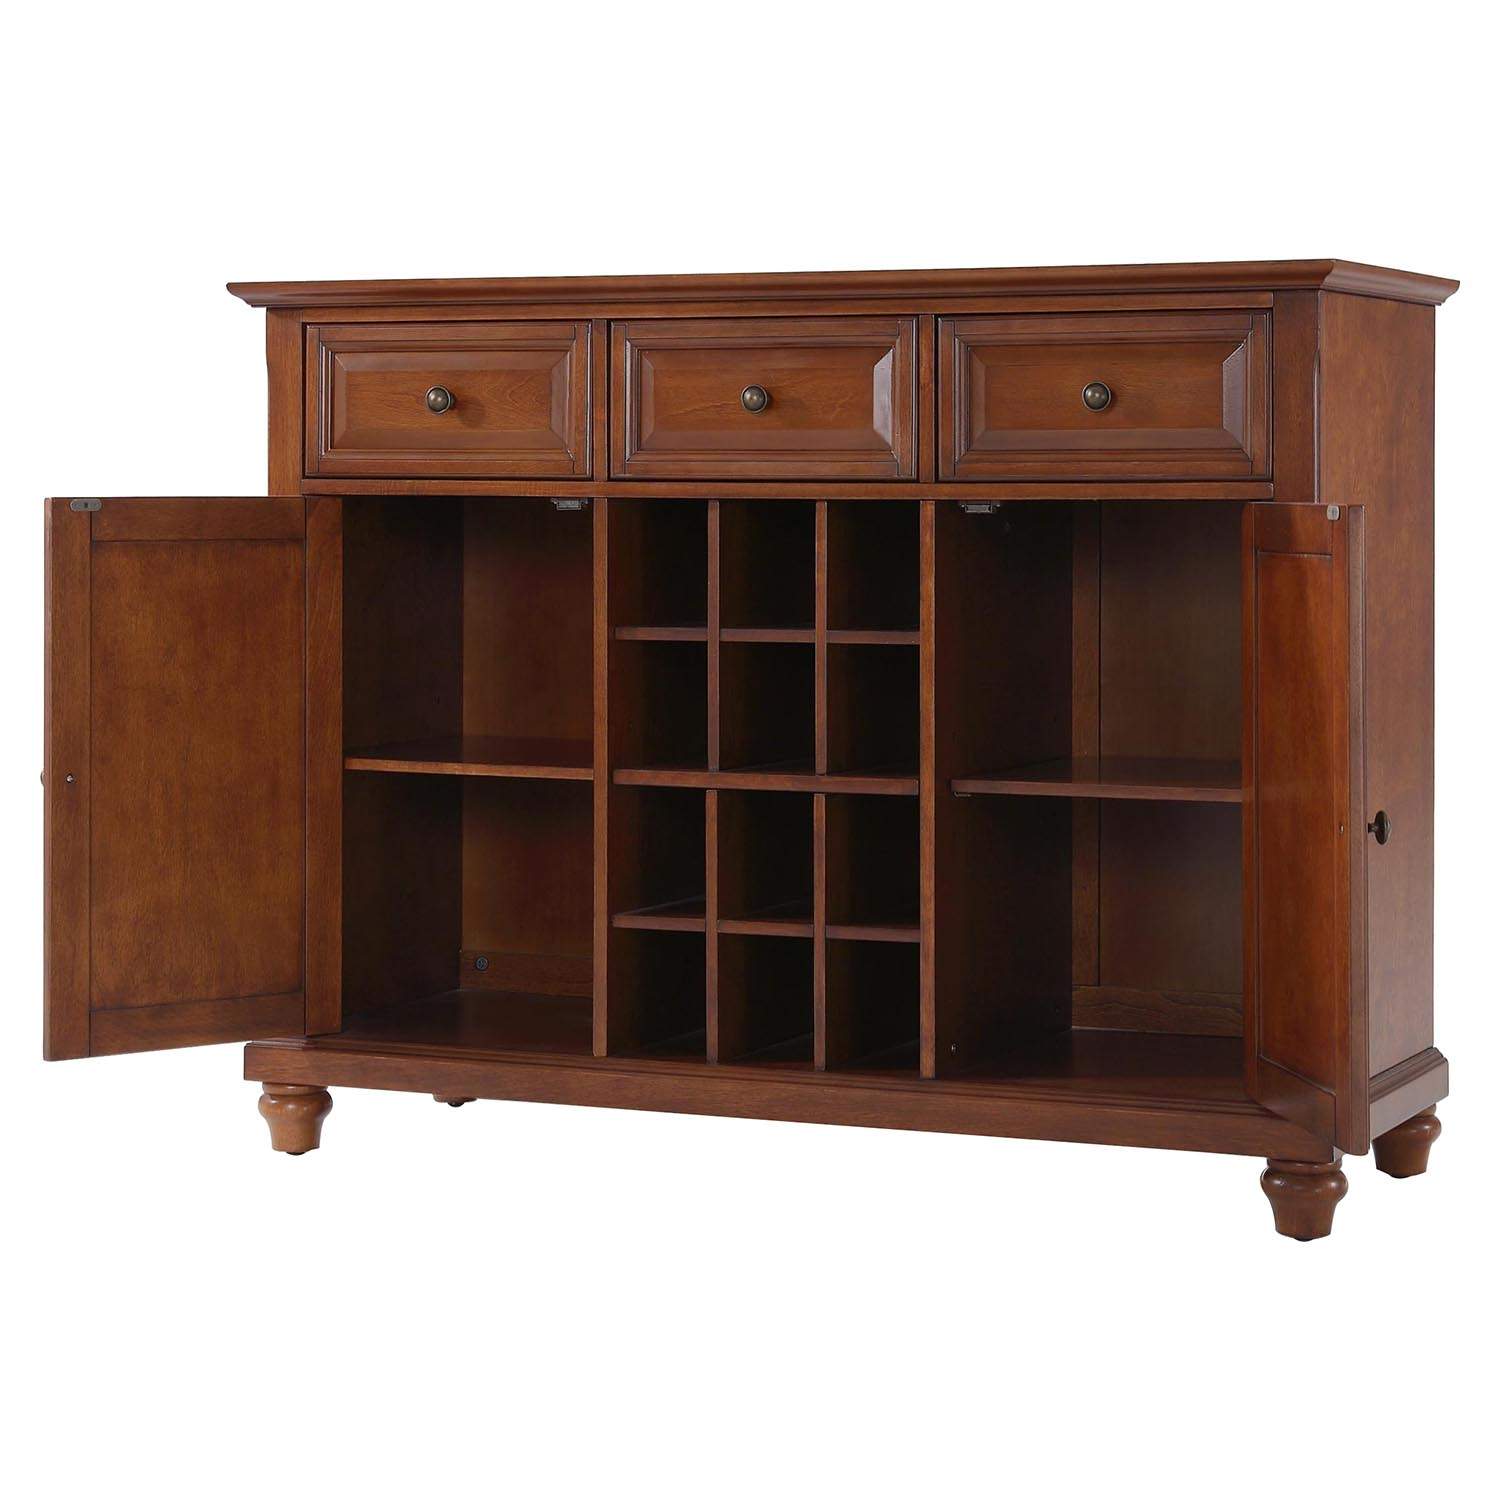 Cambridge Buffet Server / Sideboard - Classic Cherry - CROS-KF42001DCH